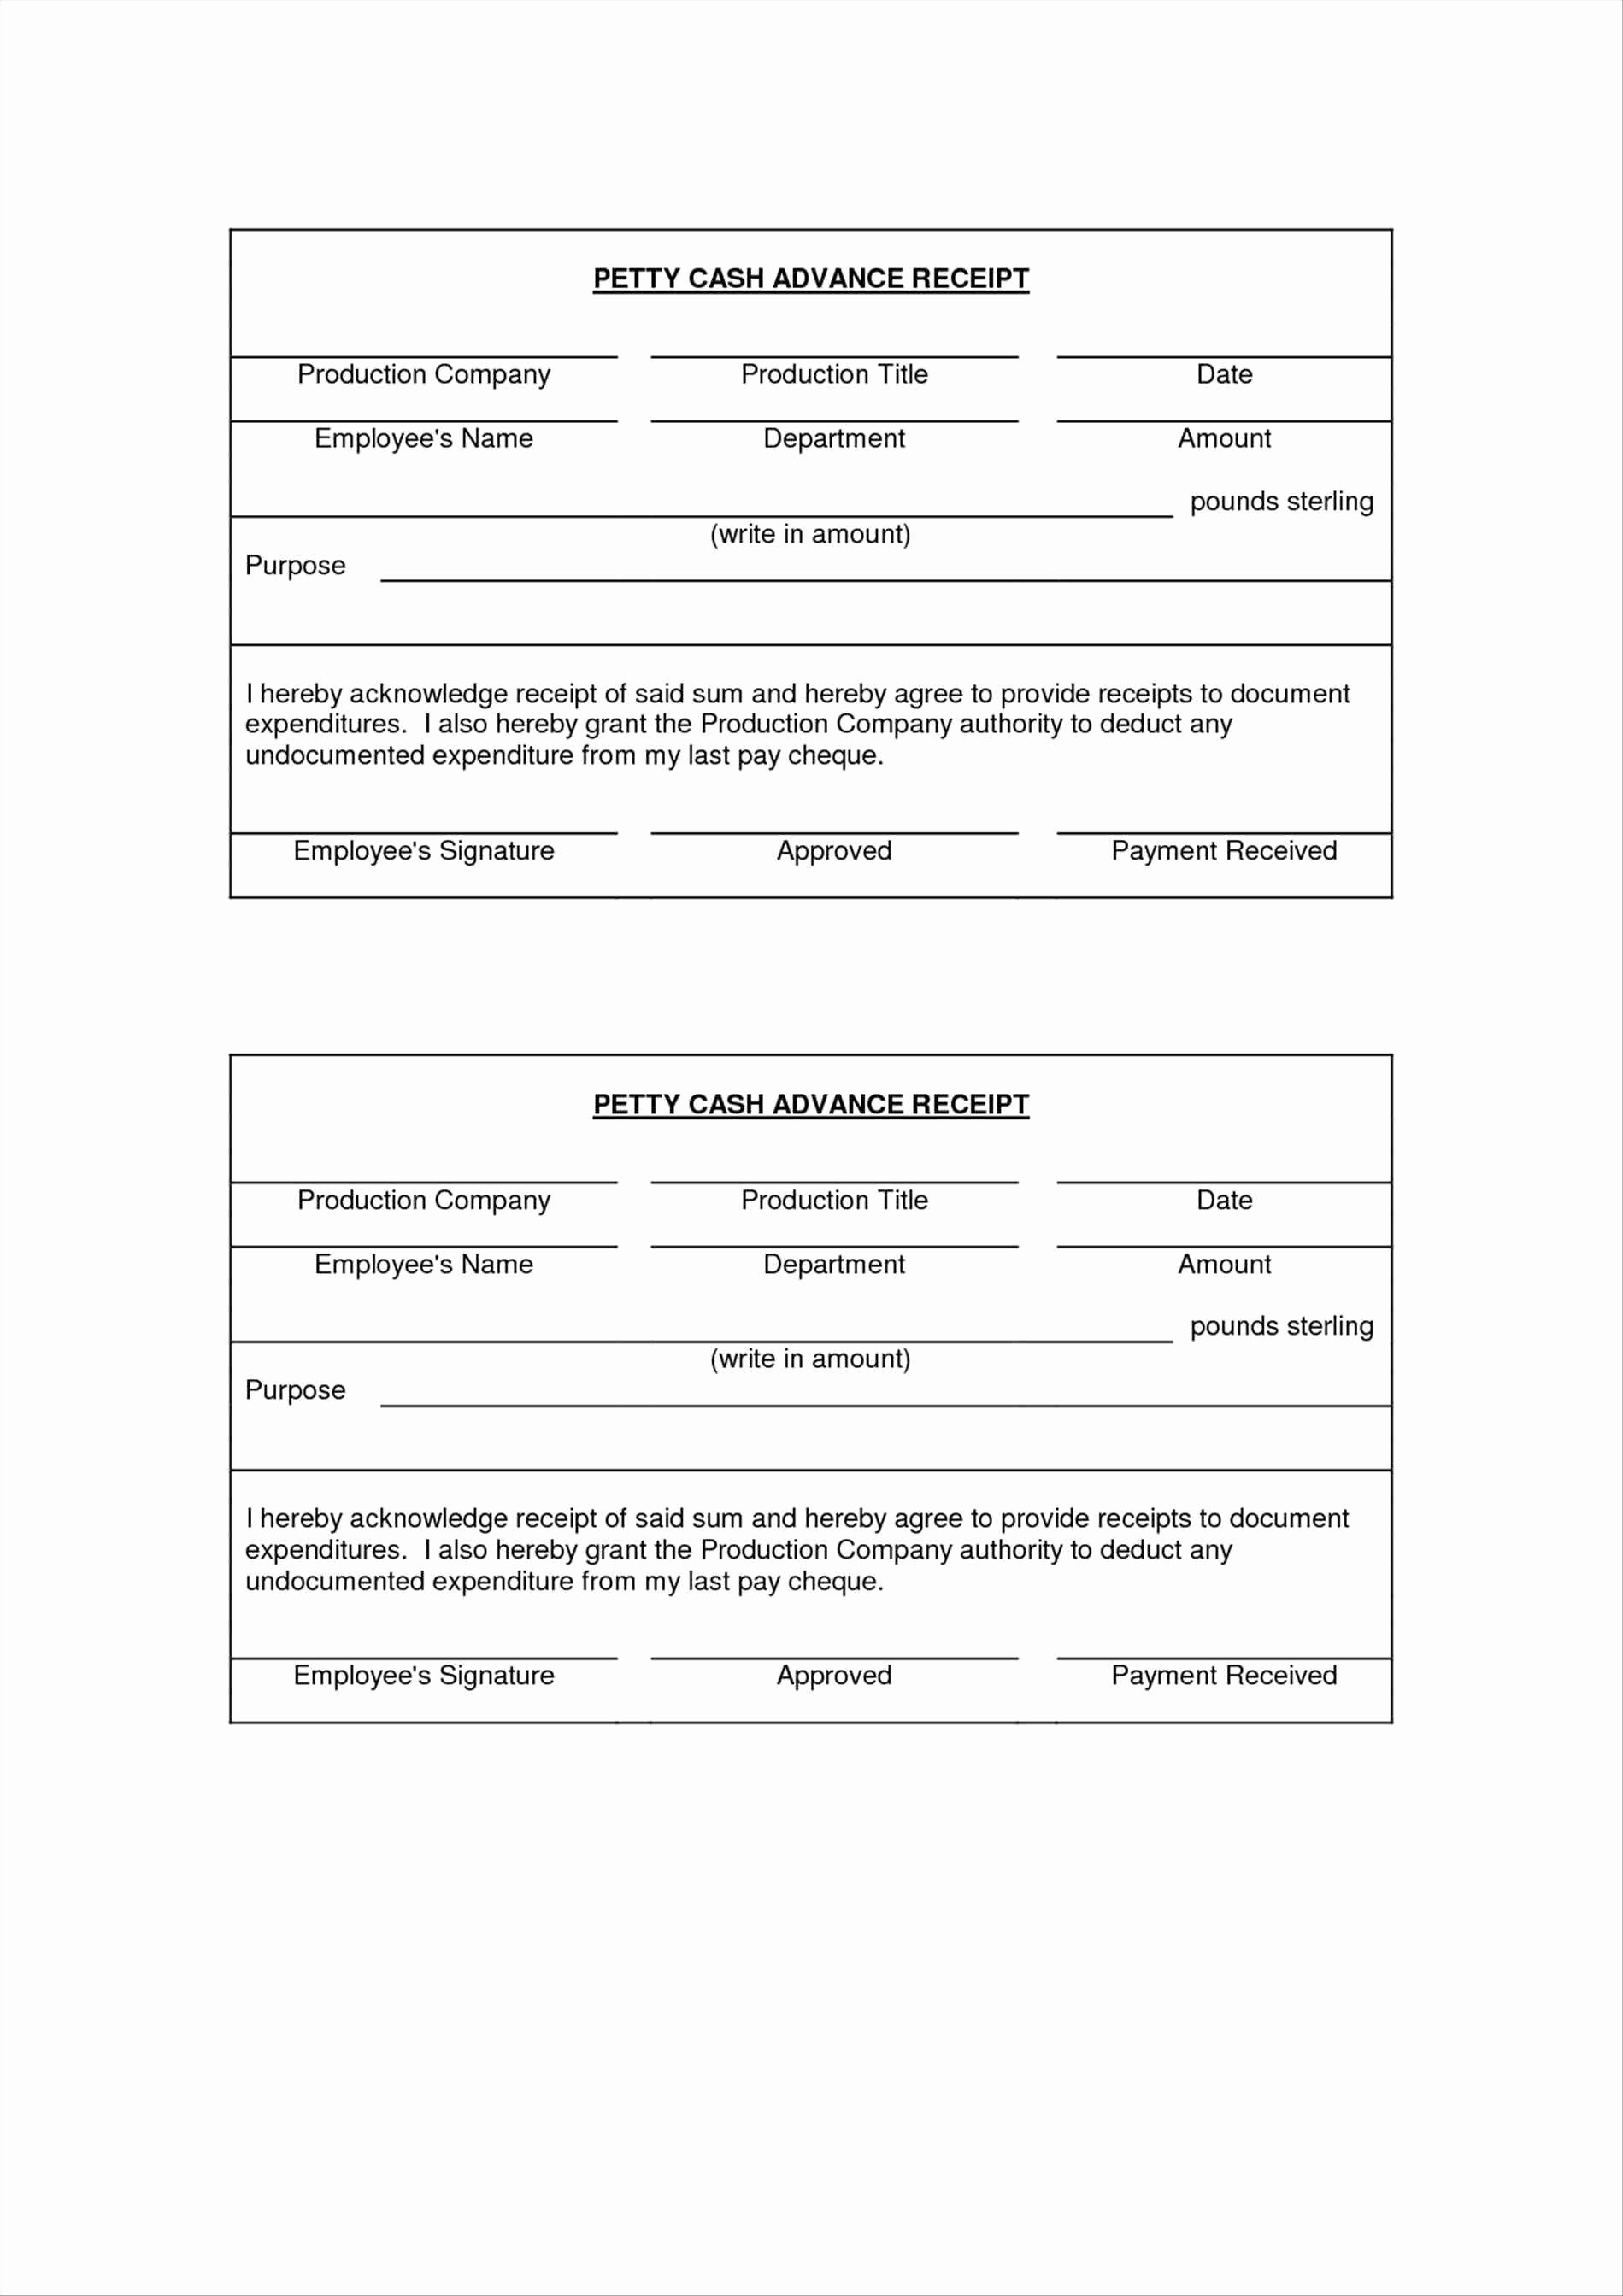 Travel Advance Request form Template Luxury Cash Advance Request form Template